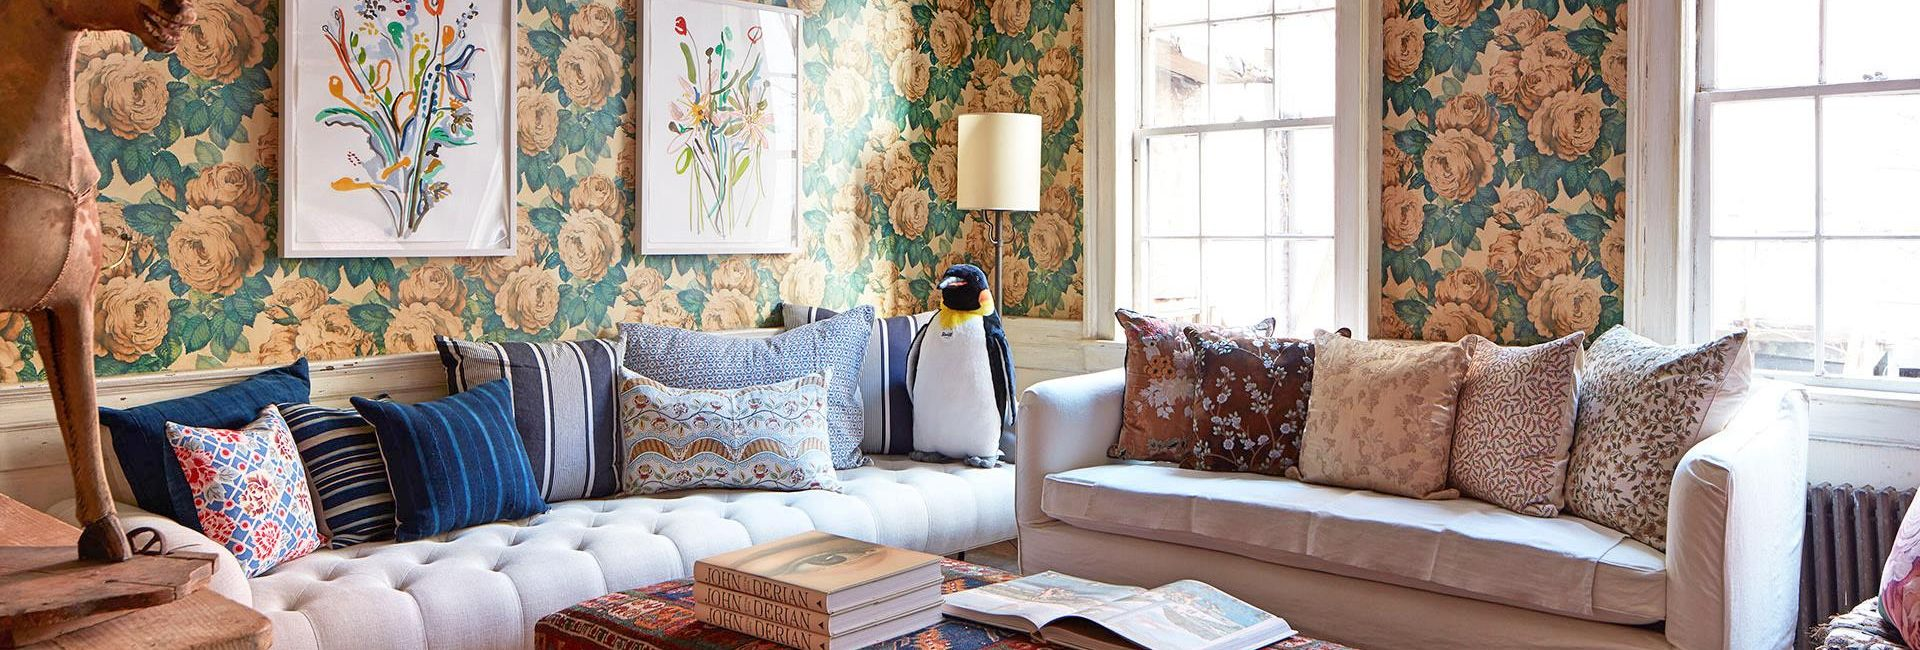 John Derian style at home in New York City